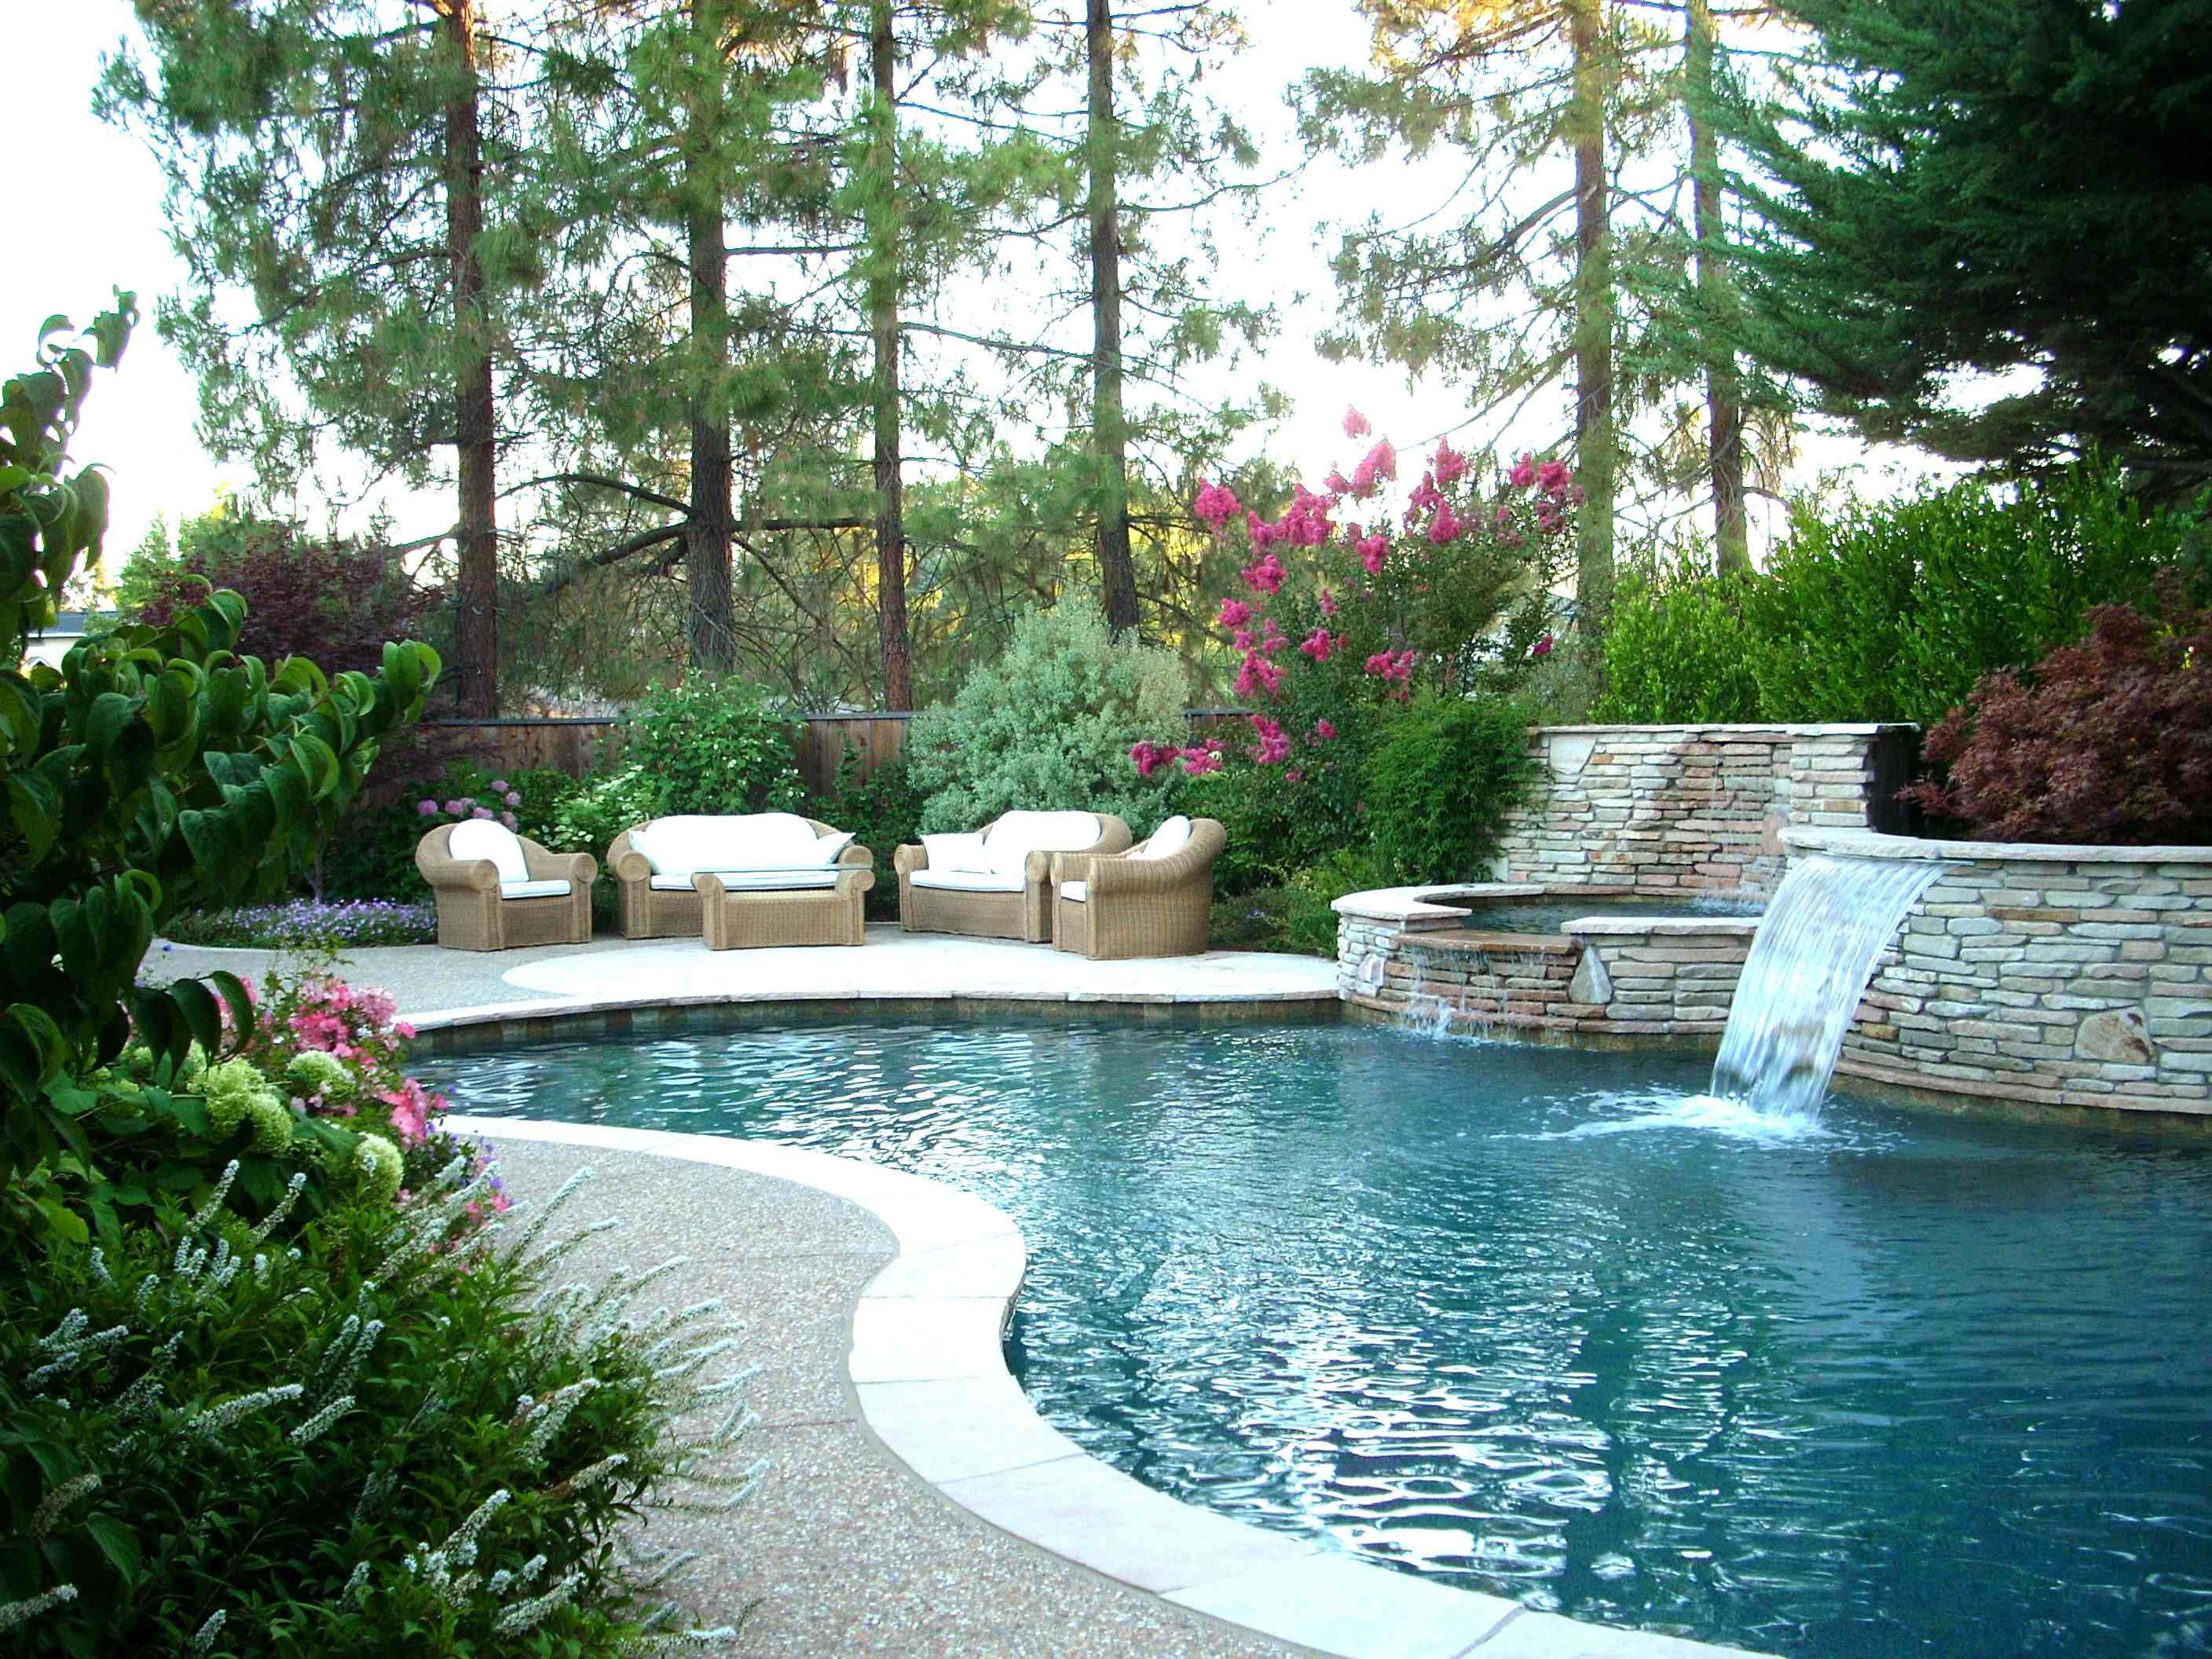 backyard pool landscaping ideas homesfeed. Black Bedroom Furniture Sets. Home Design Ideas